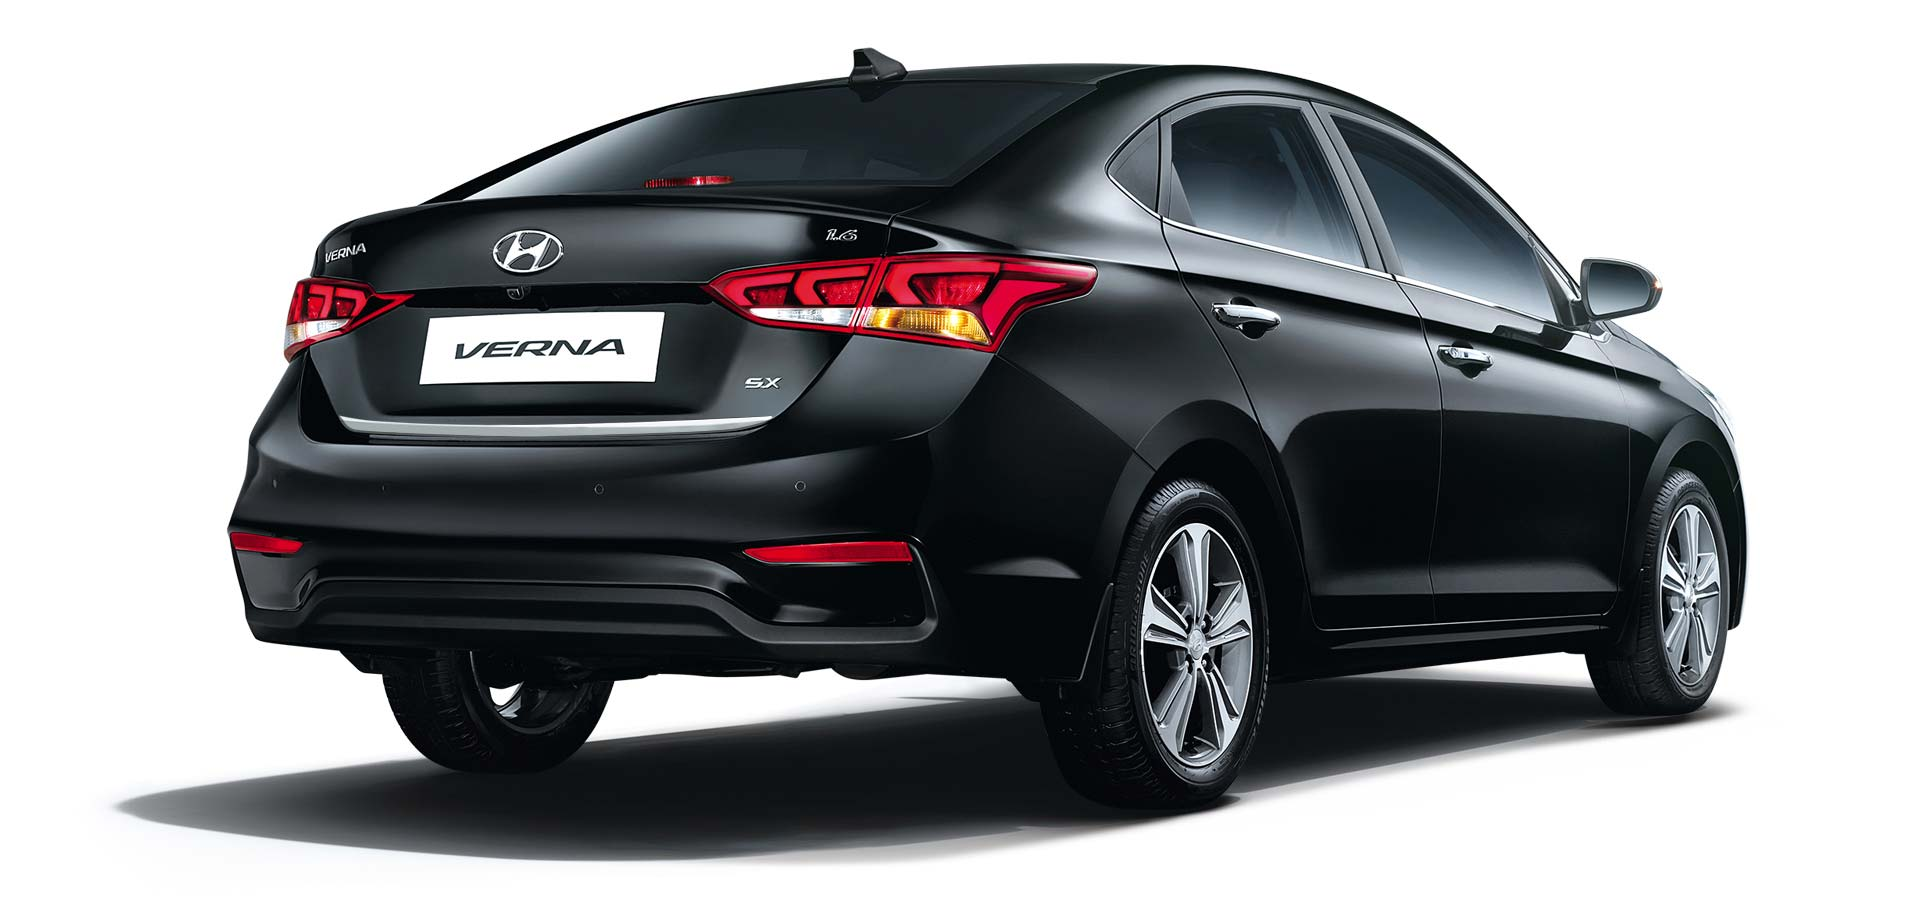 2017-Hyundai-Verna-India_2